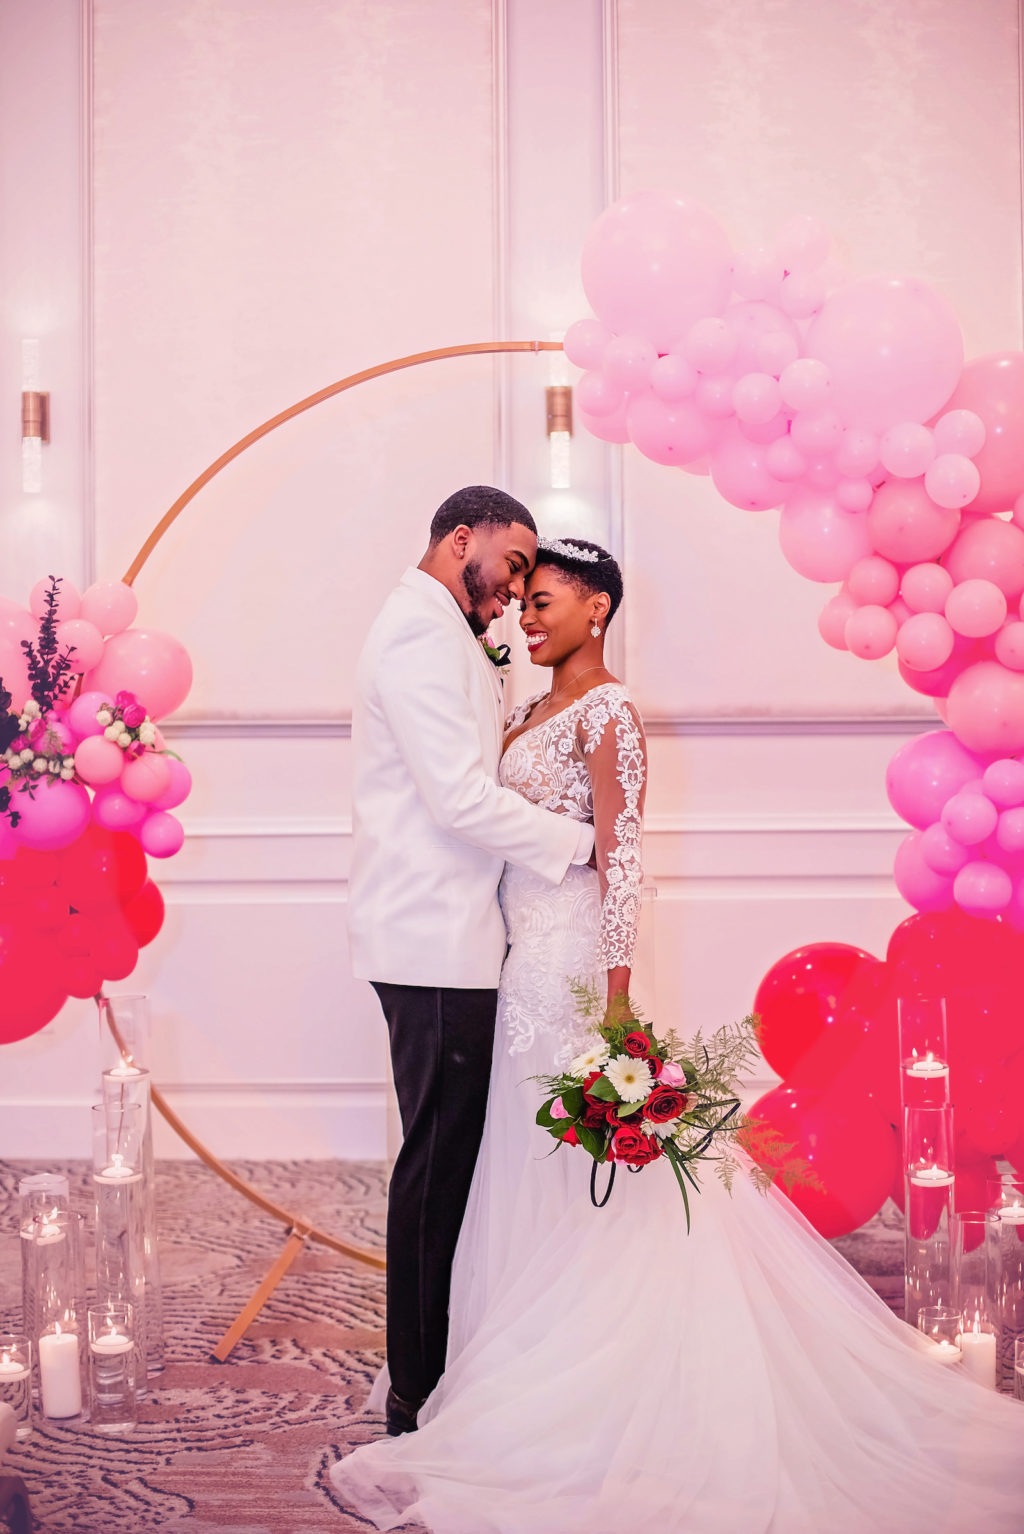 Bride and Groom Wedding Portrait with Wedding Ceremony Arch with Pink and Red Ombre Balloon Arch Decor | EventFull Weddings